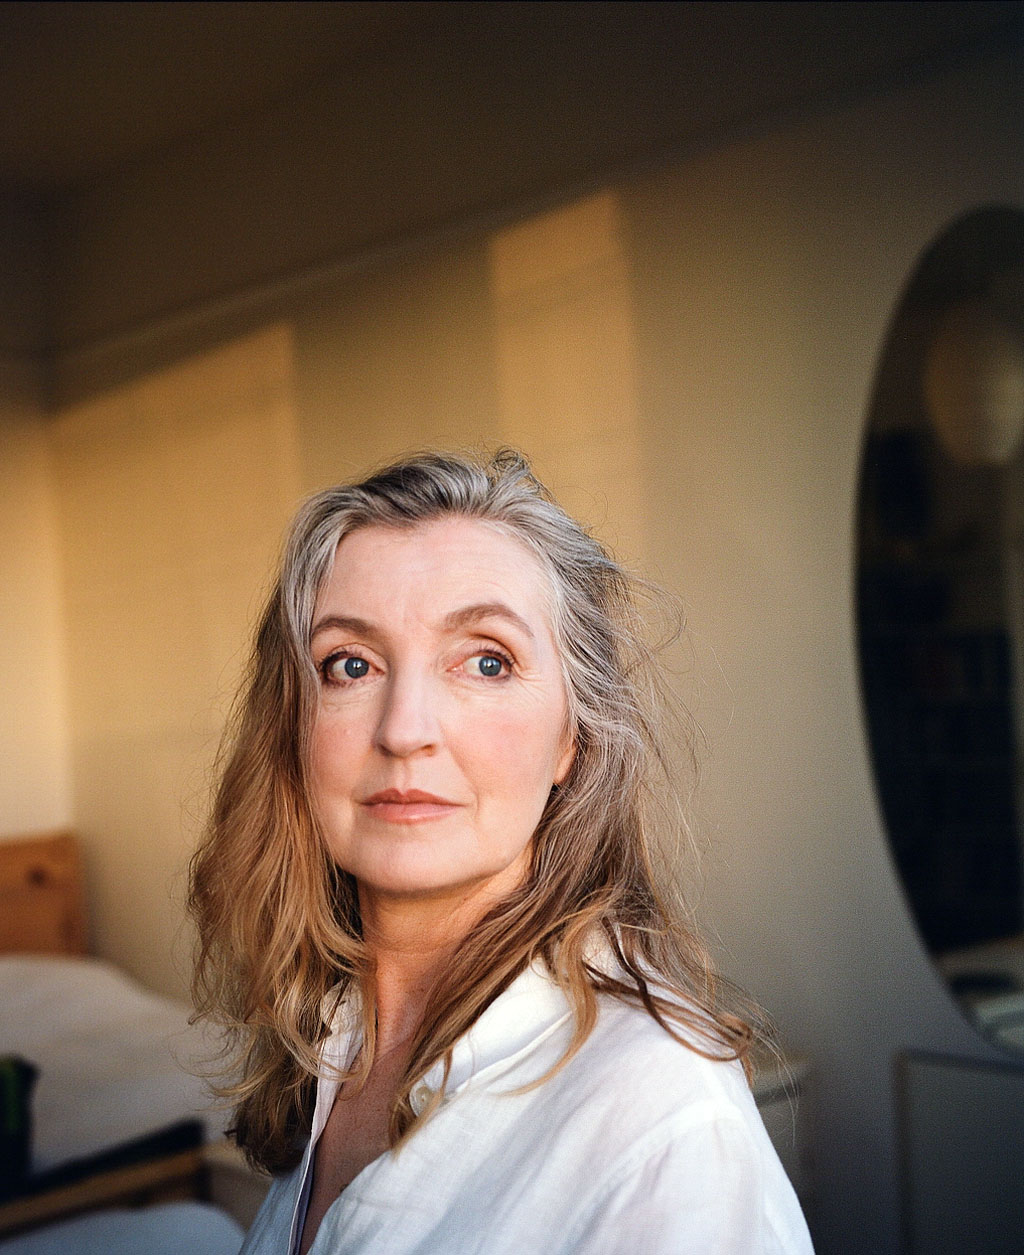 A headshot of activist Rebecca Solnit - a woman with flowing grey and brown hair, sat in the golden-hour light in a bedroom